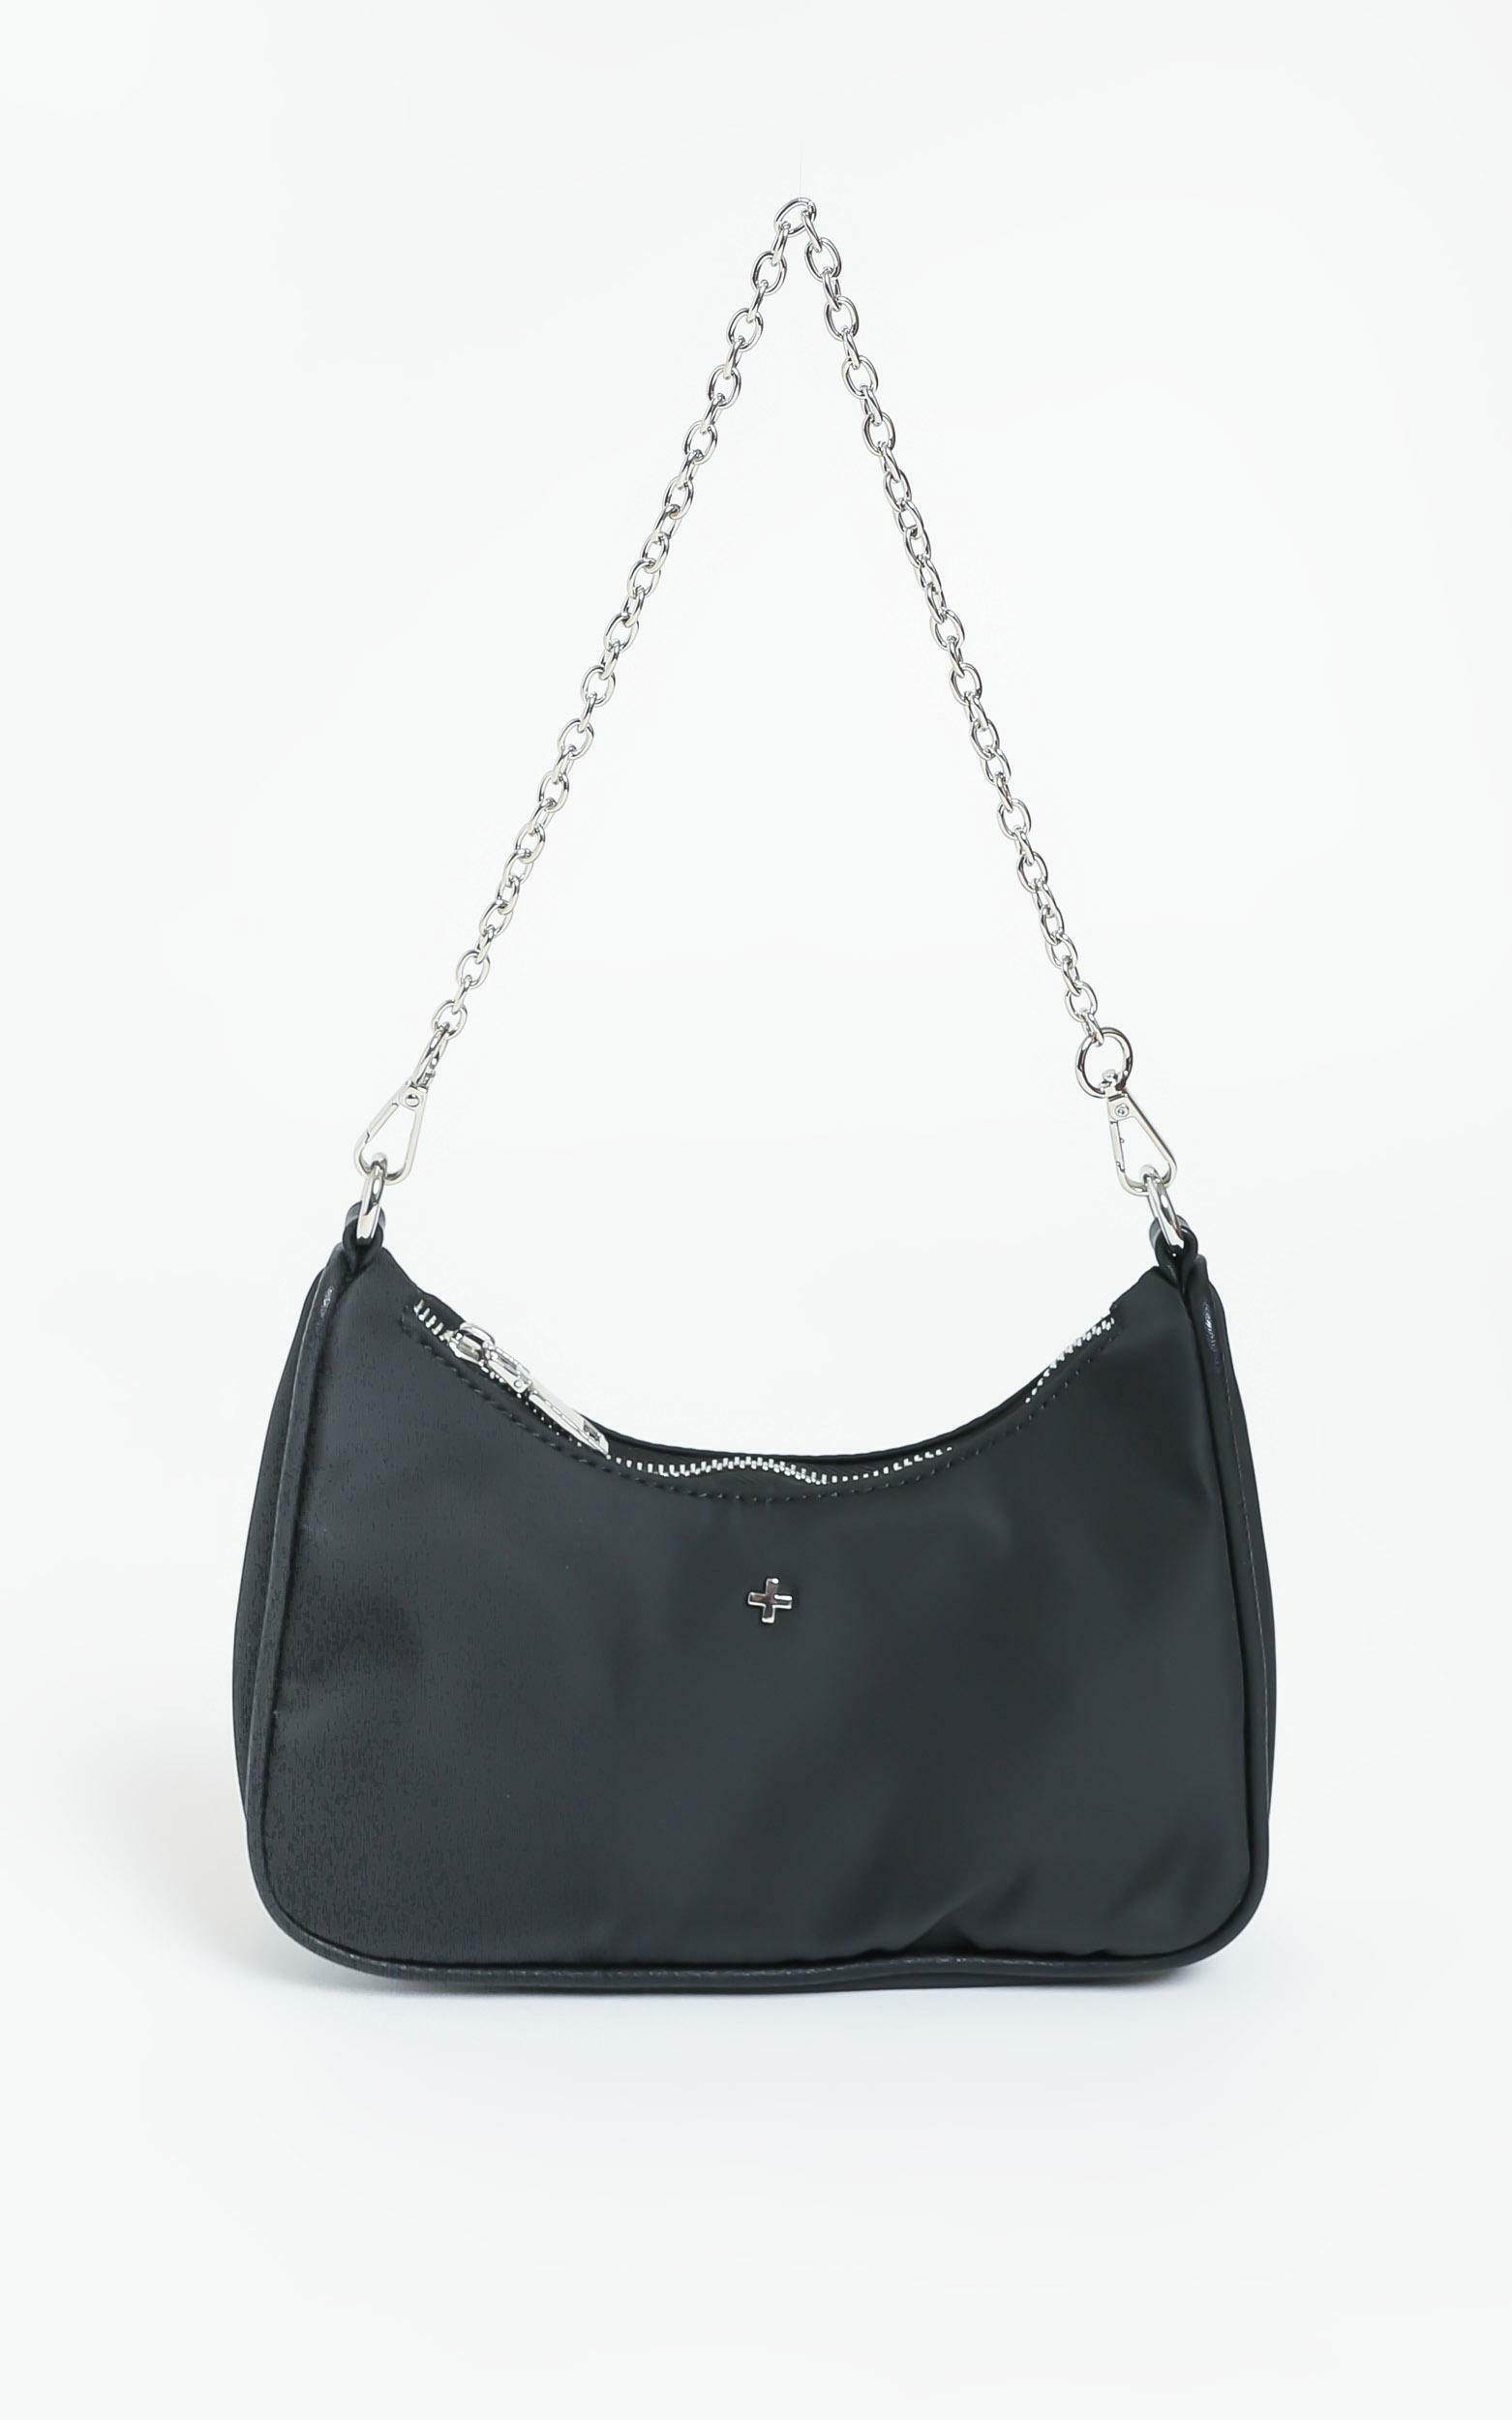 Peta and Jain - Paloma Bag In Black Nylon, Black, hi-res image number null